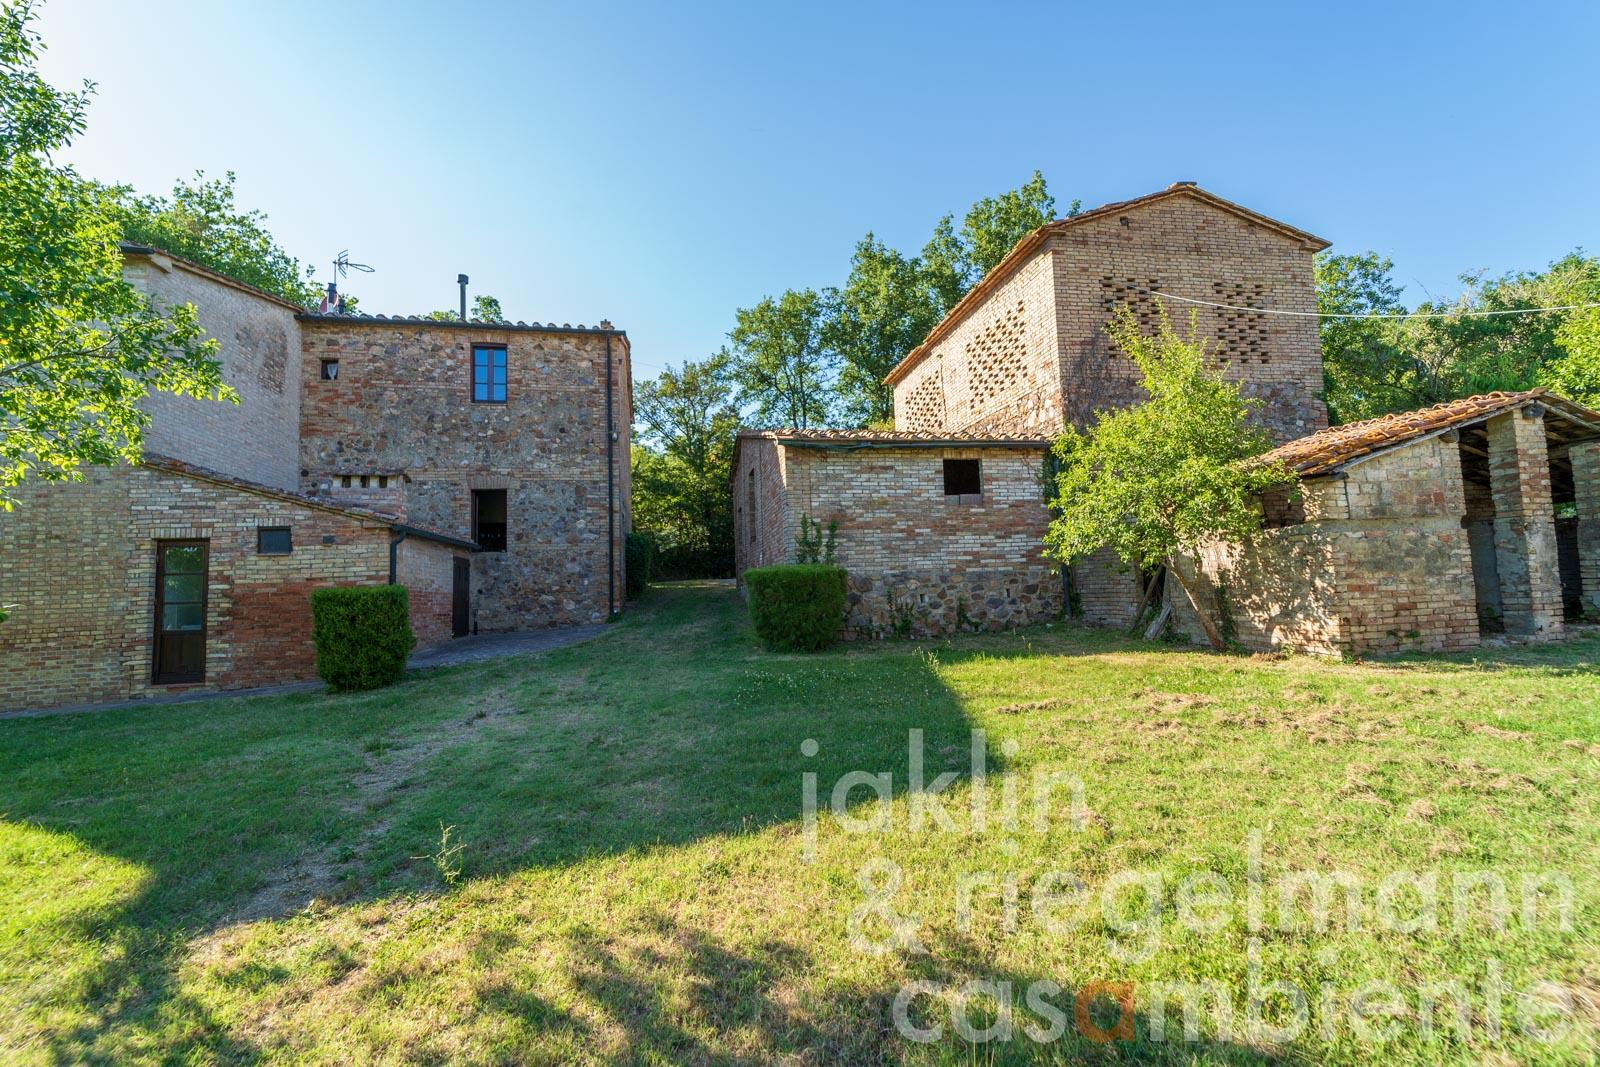 Agriturismo with 4 flats and barn near the Abbey of San Galgano